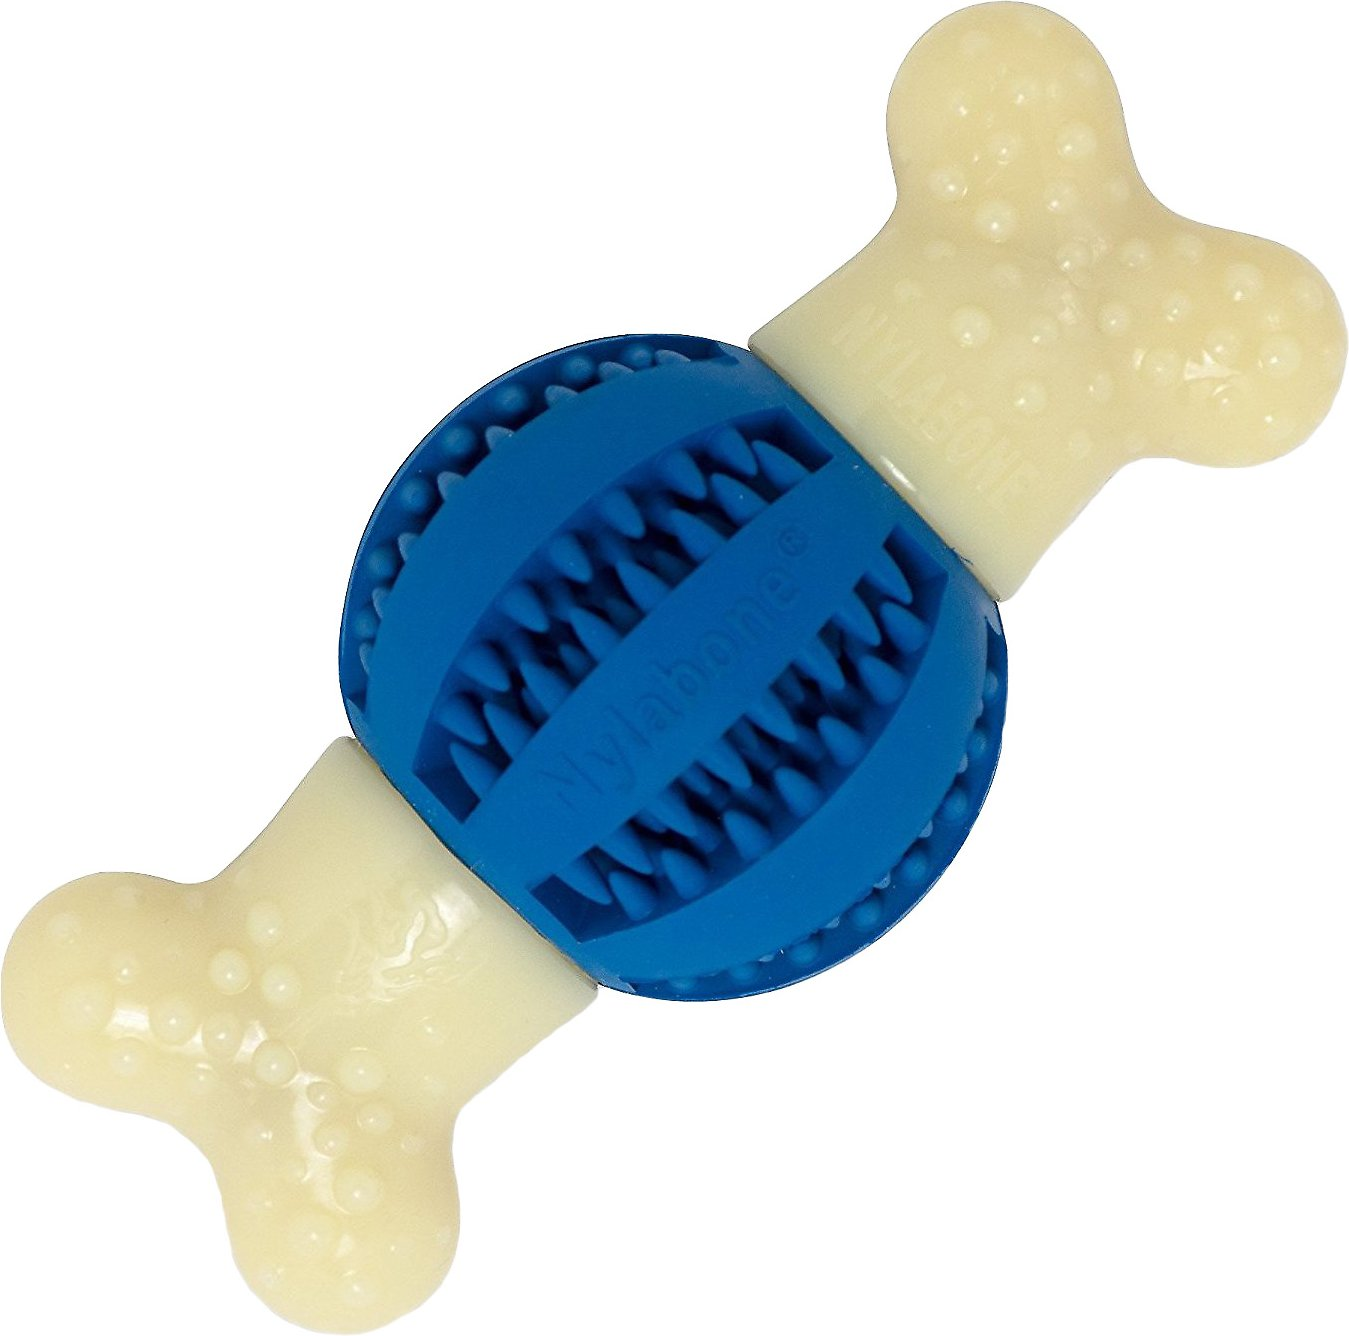 Nylabone DuraChew Double Action Round Ball Bacon Flavor Dog Toy